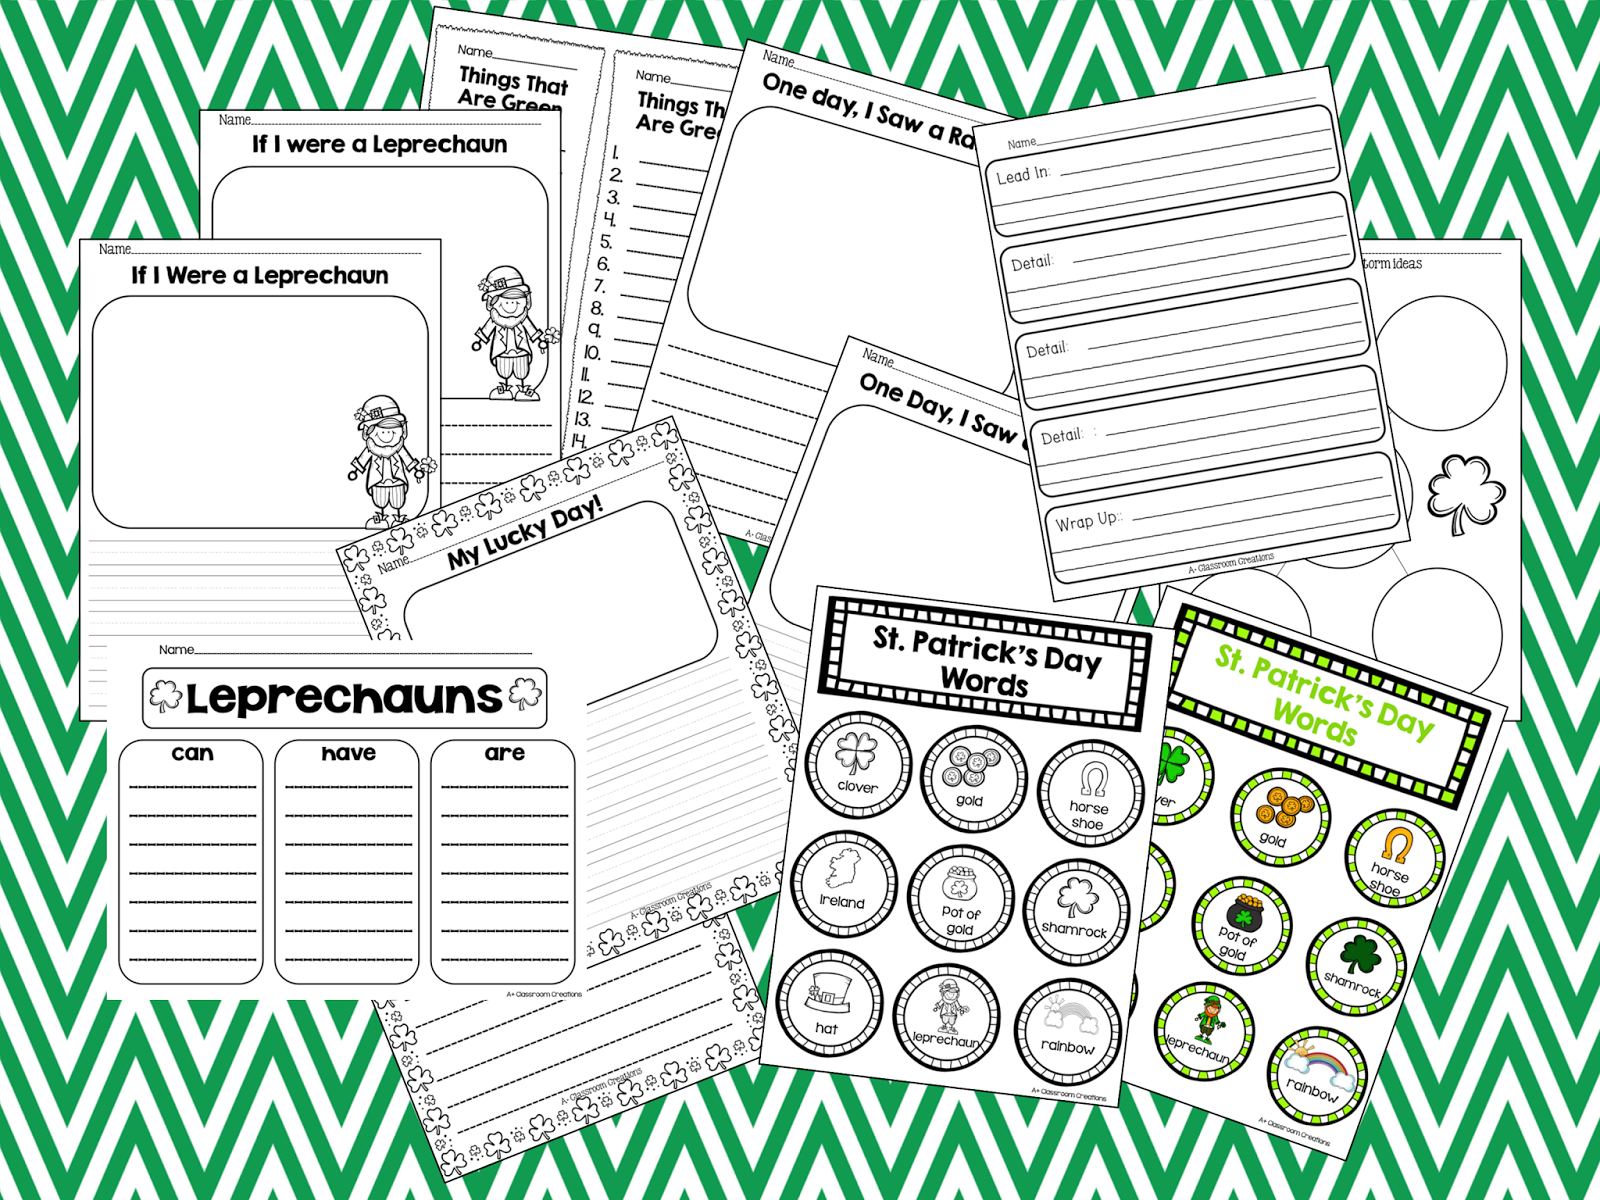 http://www.teacherspayteachers.com/Product/St-Patricks-Day-Pack-1083896